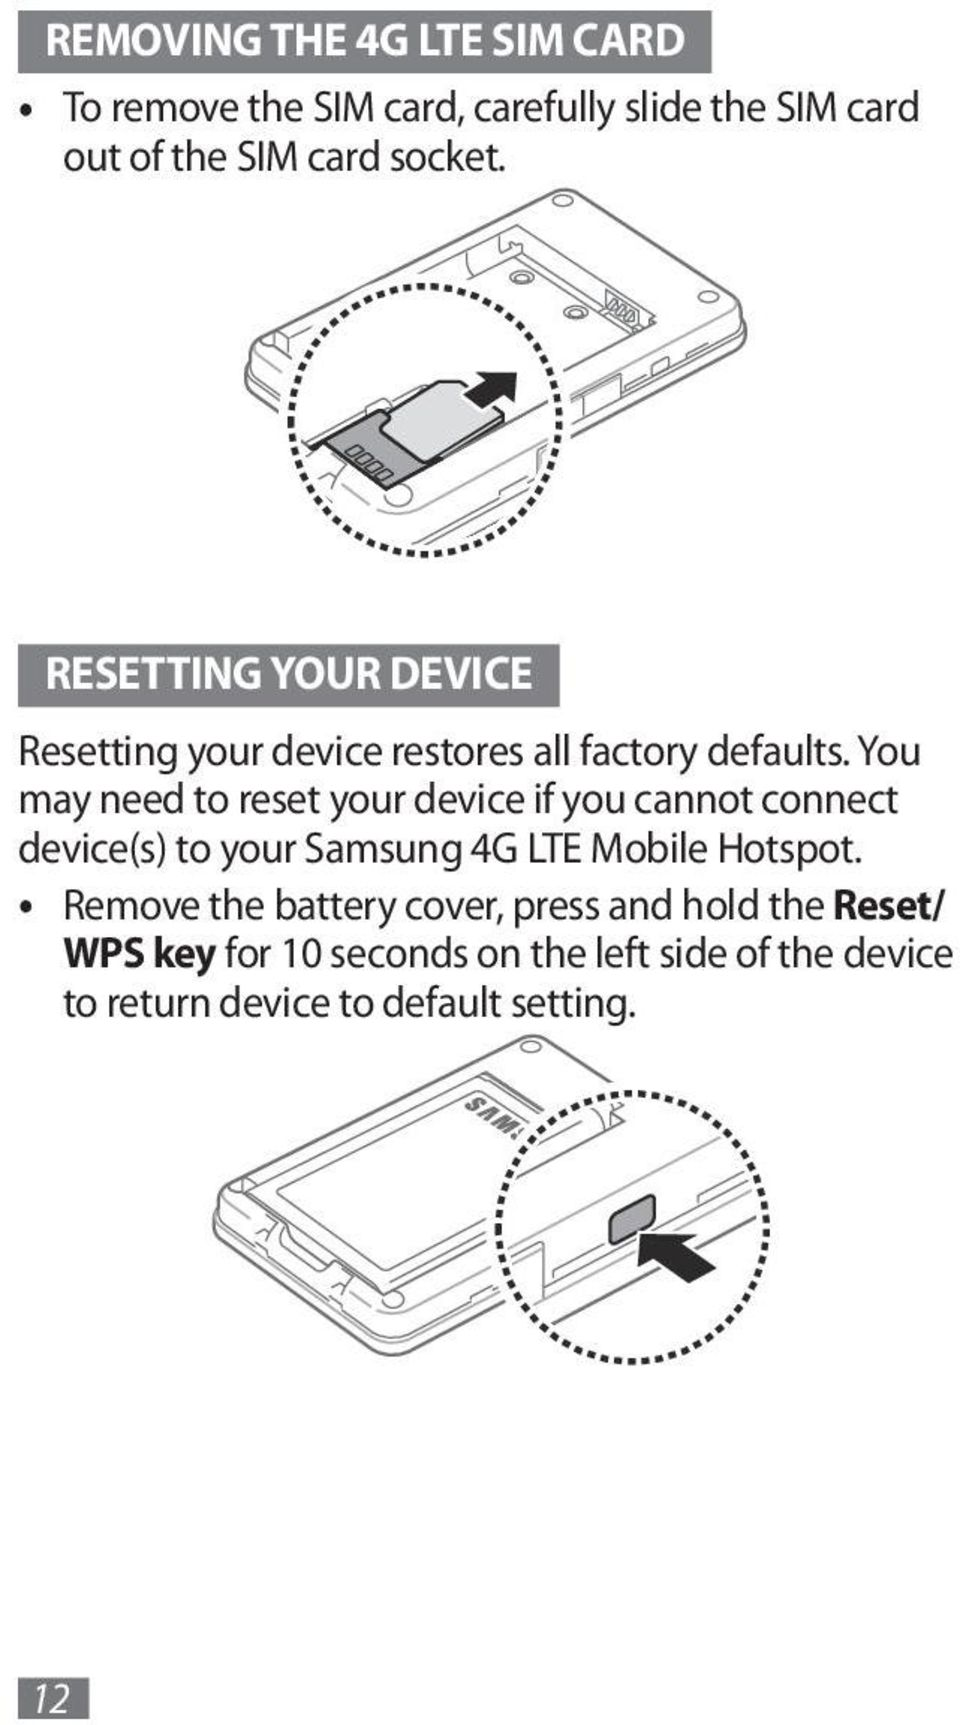 You may need to reset your device if you cannot connect device(s) to your Samsung 4G LTE Mobile Hotspot.